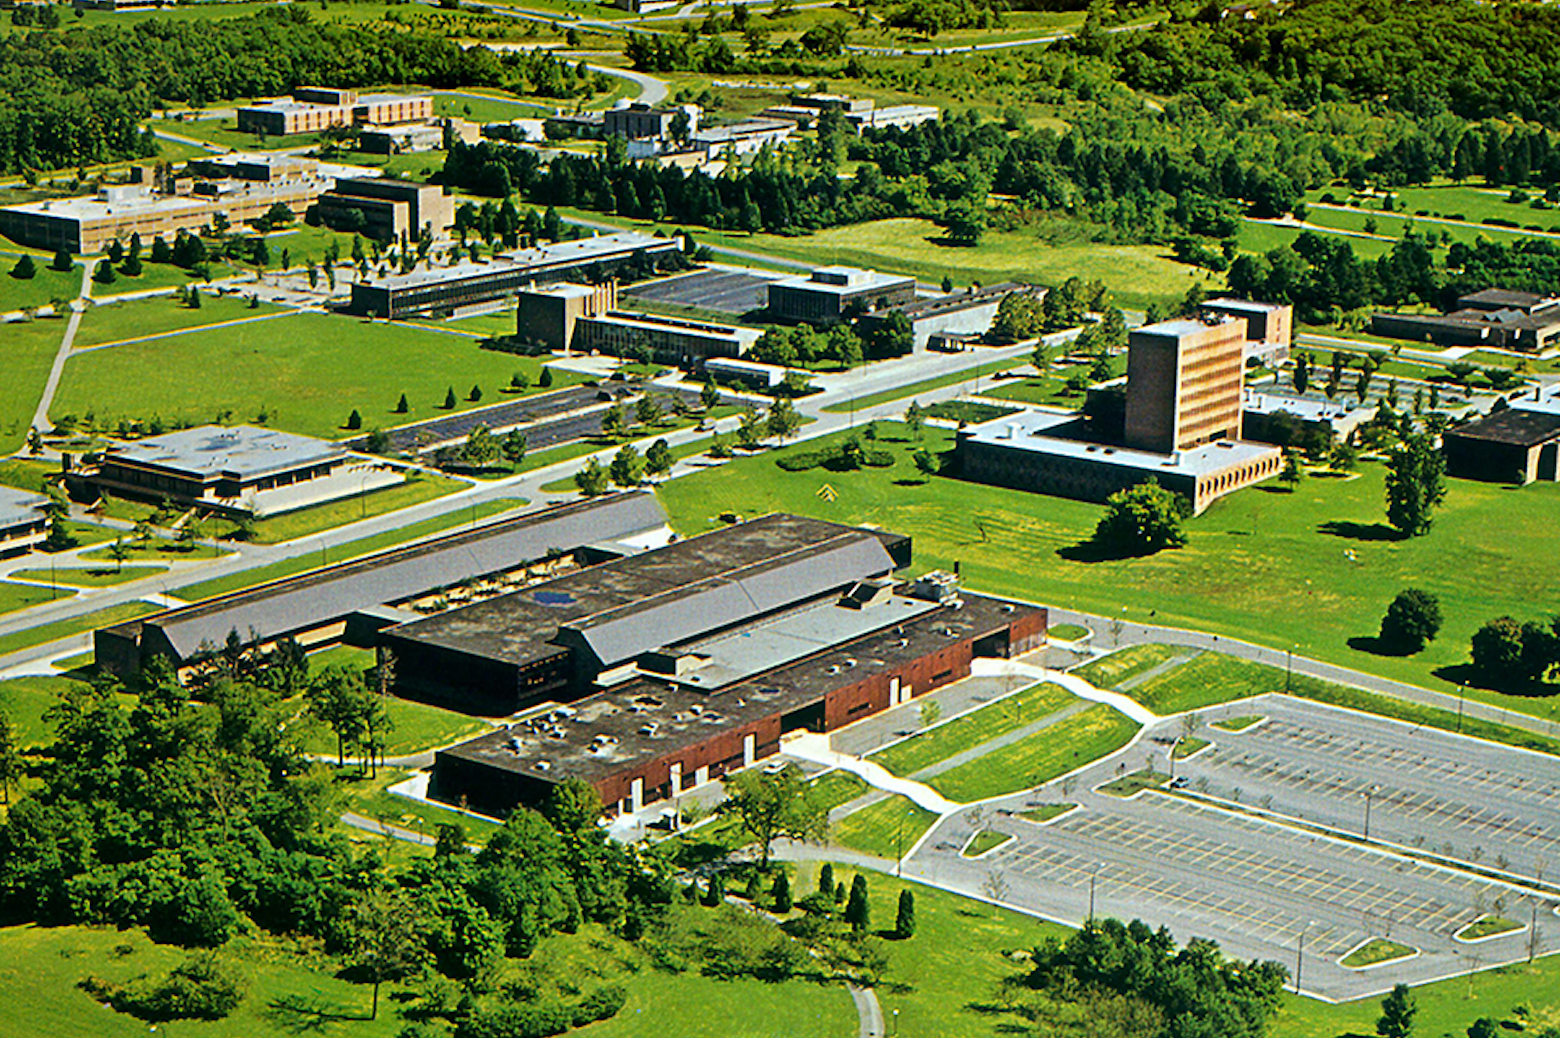 Aerial view of the Automotive engineering building